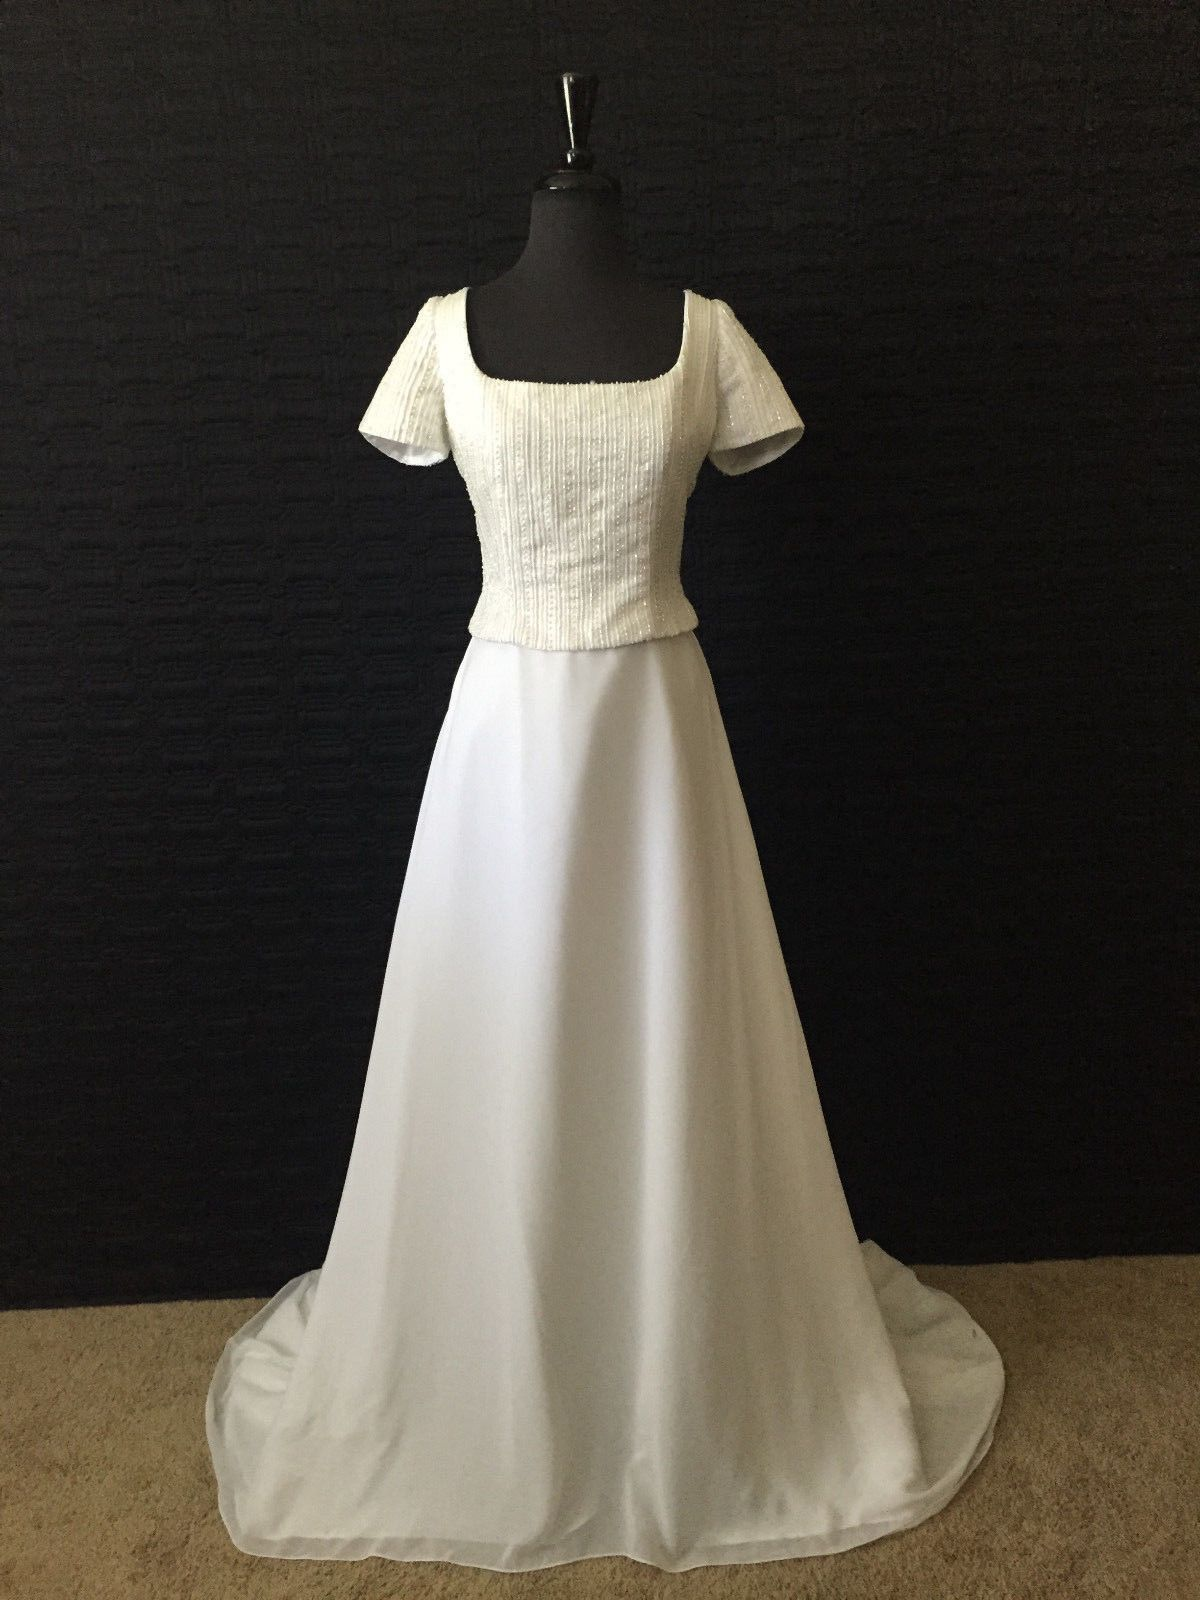 Wedding dresses for 2nd marriage  Awesome Awesome Modest Conservative Wedding Dress White Size